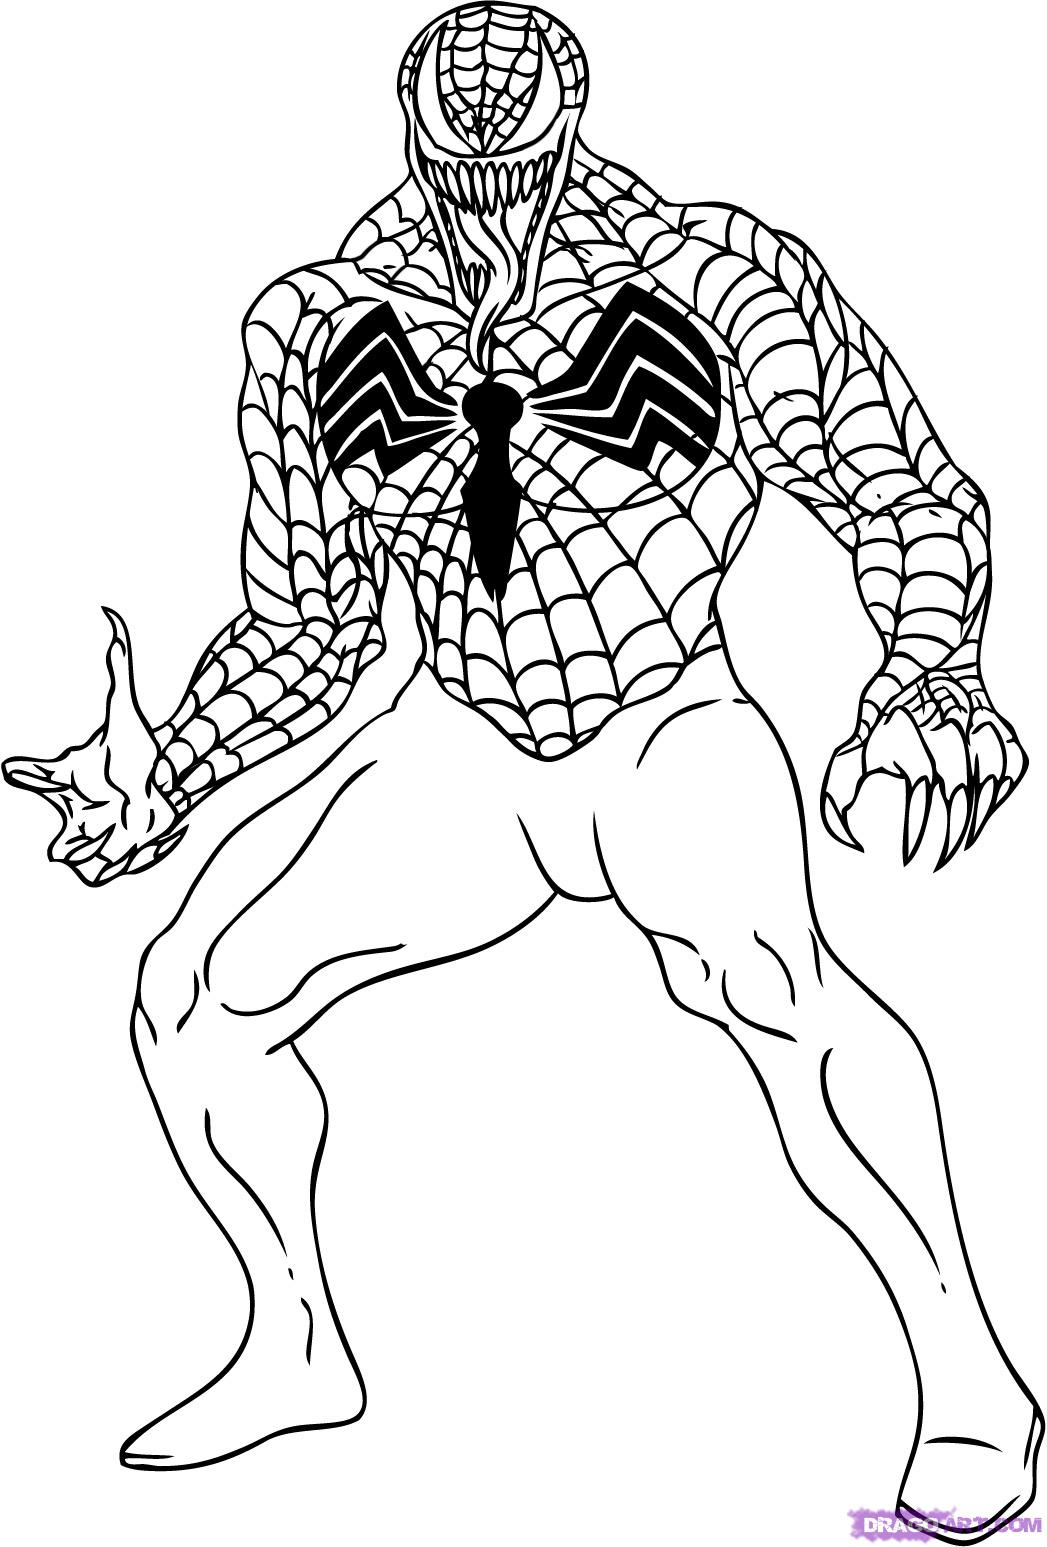 Coloring Pages Spiderman Venom Coloring Pages printable venom coloring pages me sheets